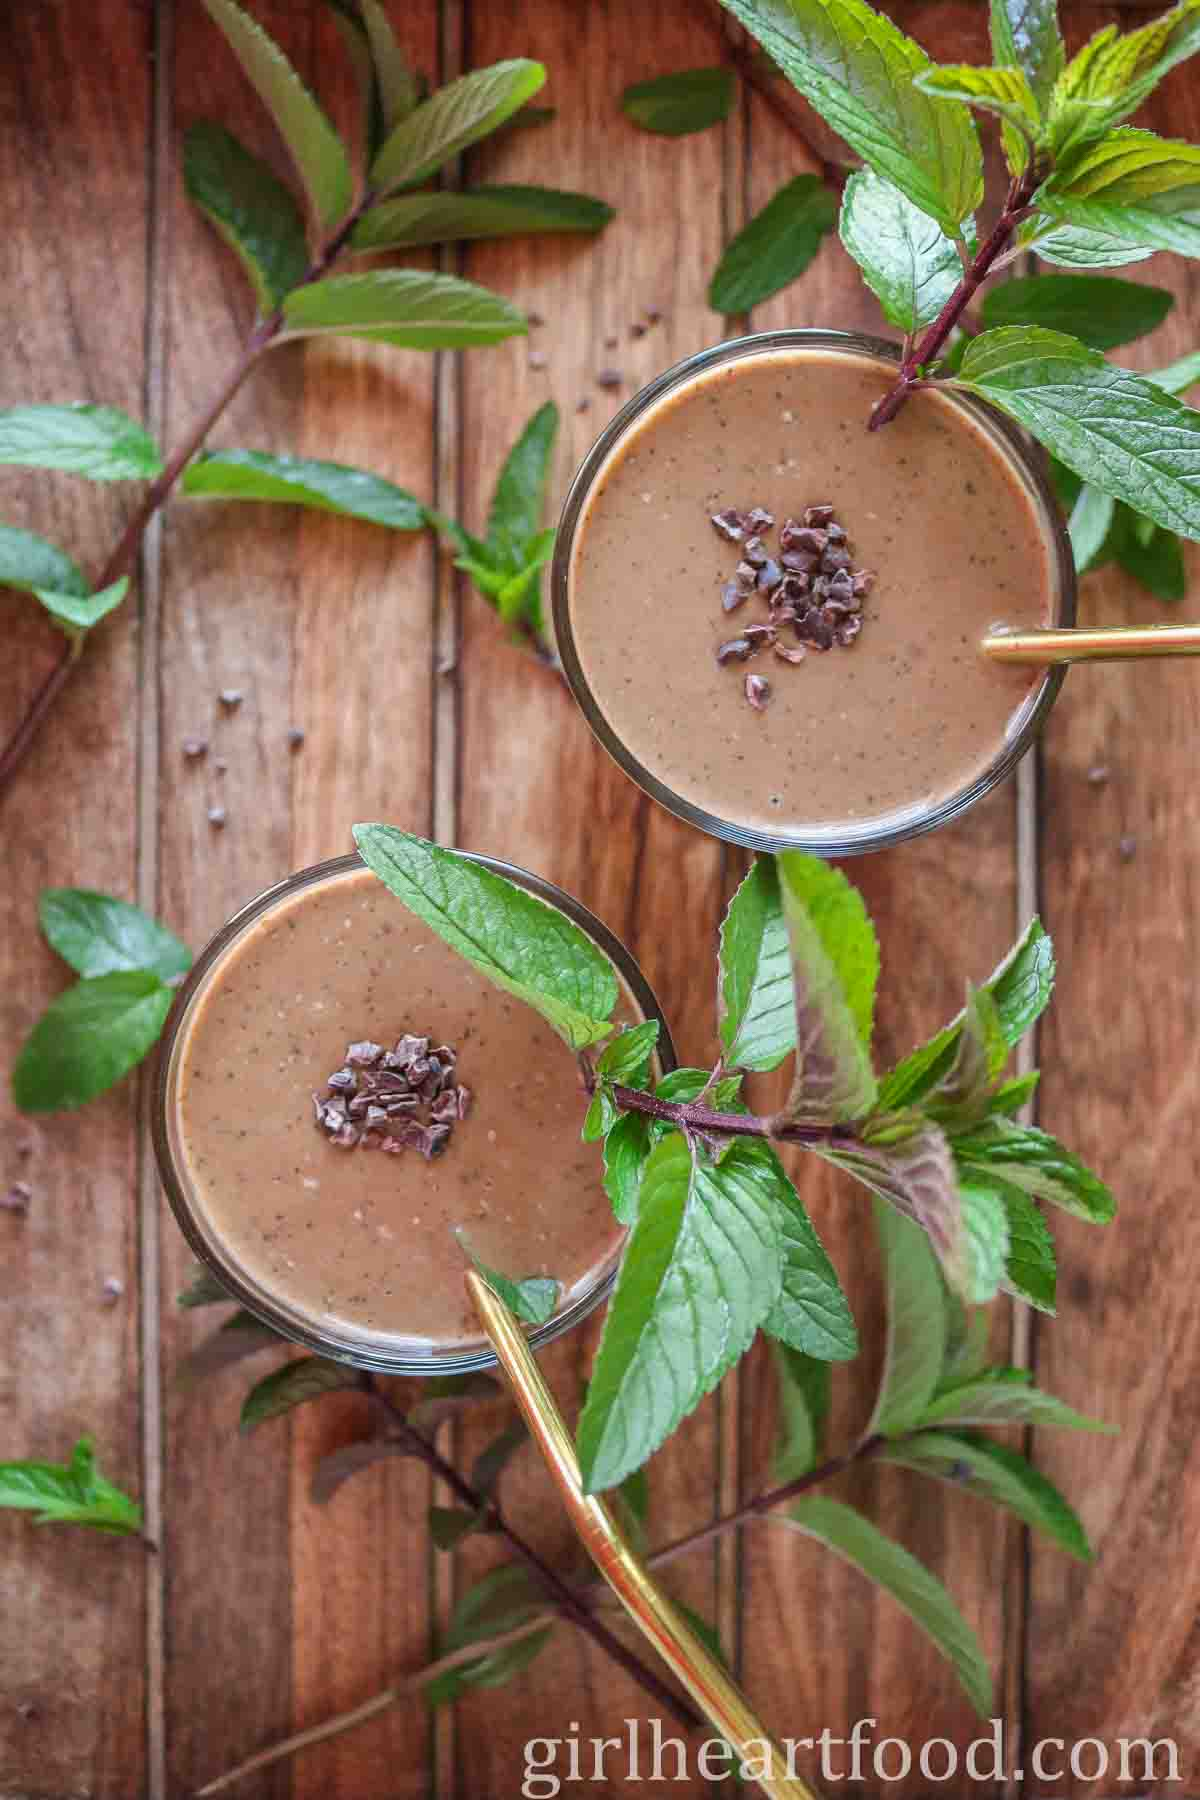 Overhead shot of two glasses of chocolate mint smoothie.